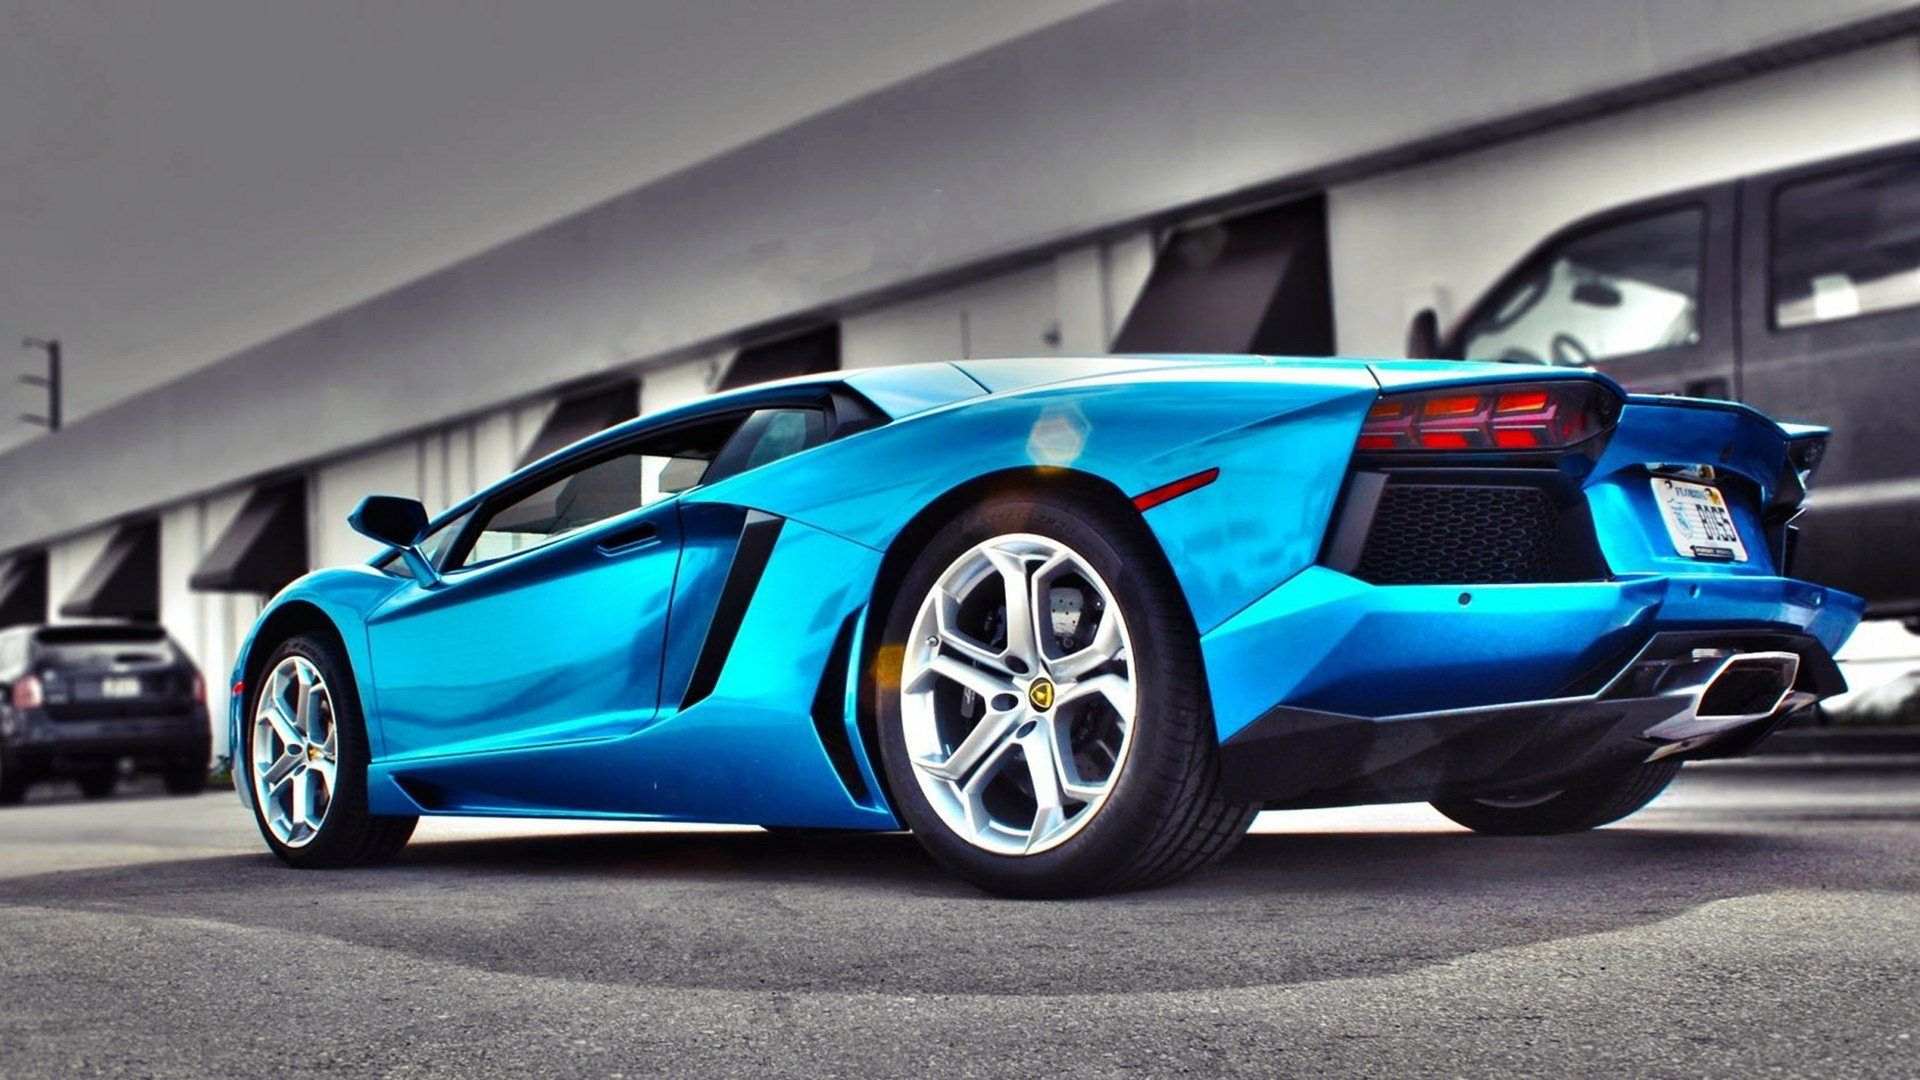 Blue Lamborghini Wallpapers Background | Vehicles Wallpapers ...